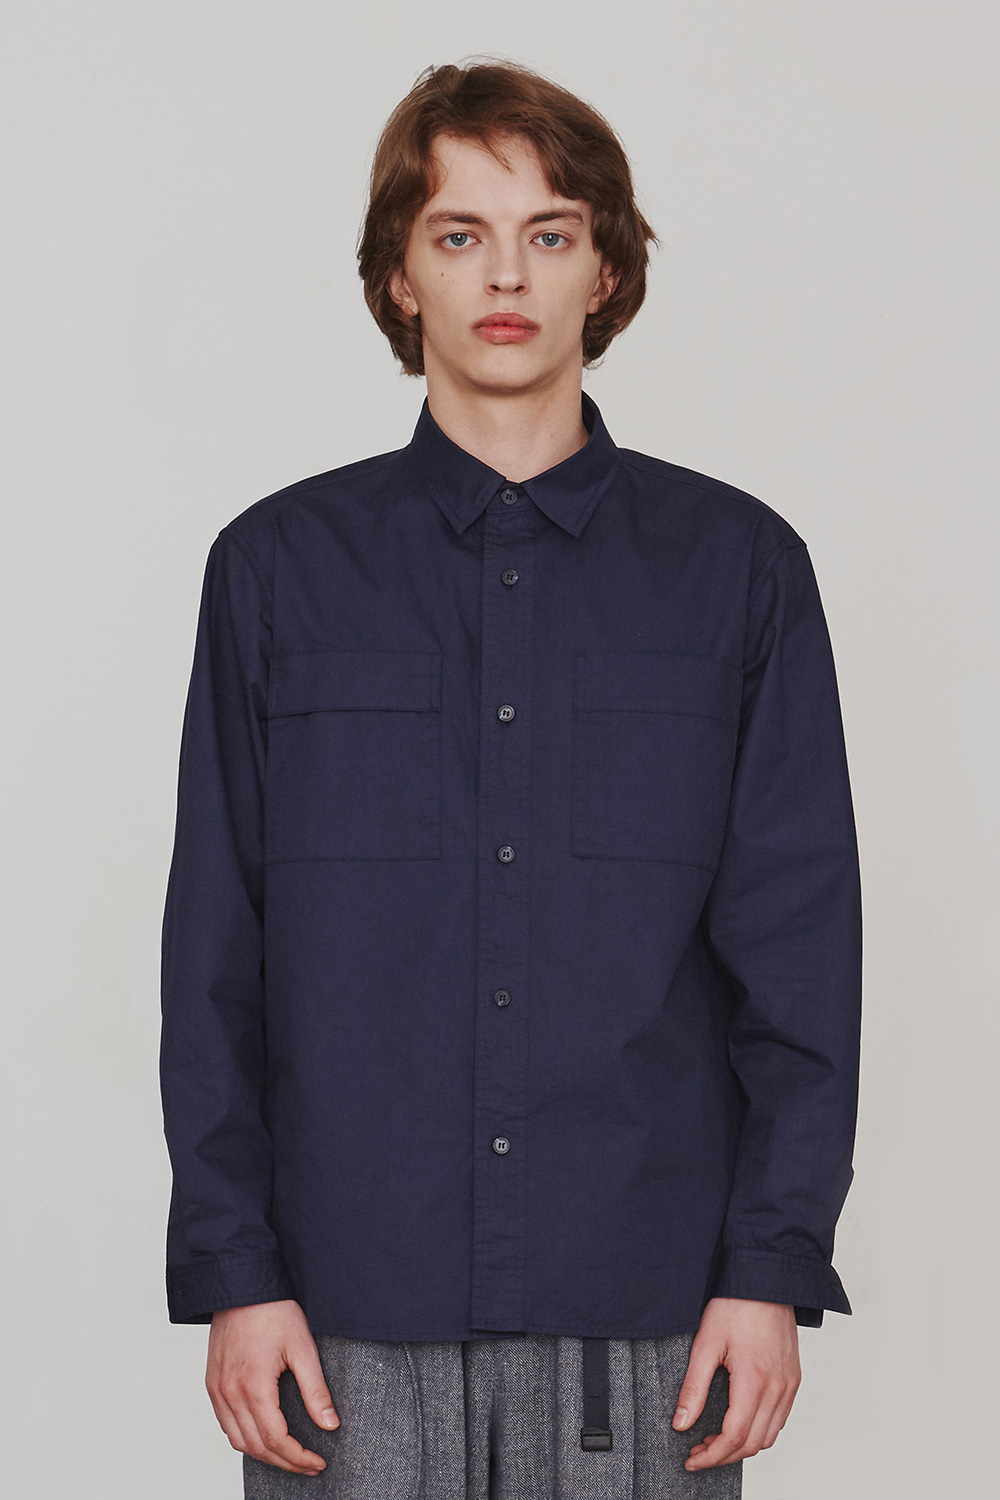 [ESFAI] Two-Sided Pocket Shirt (Navy)